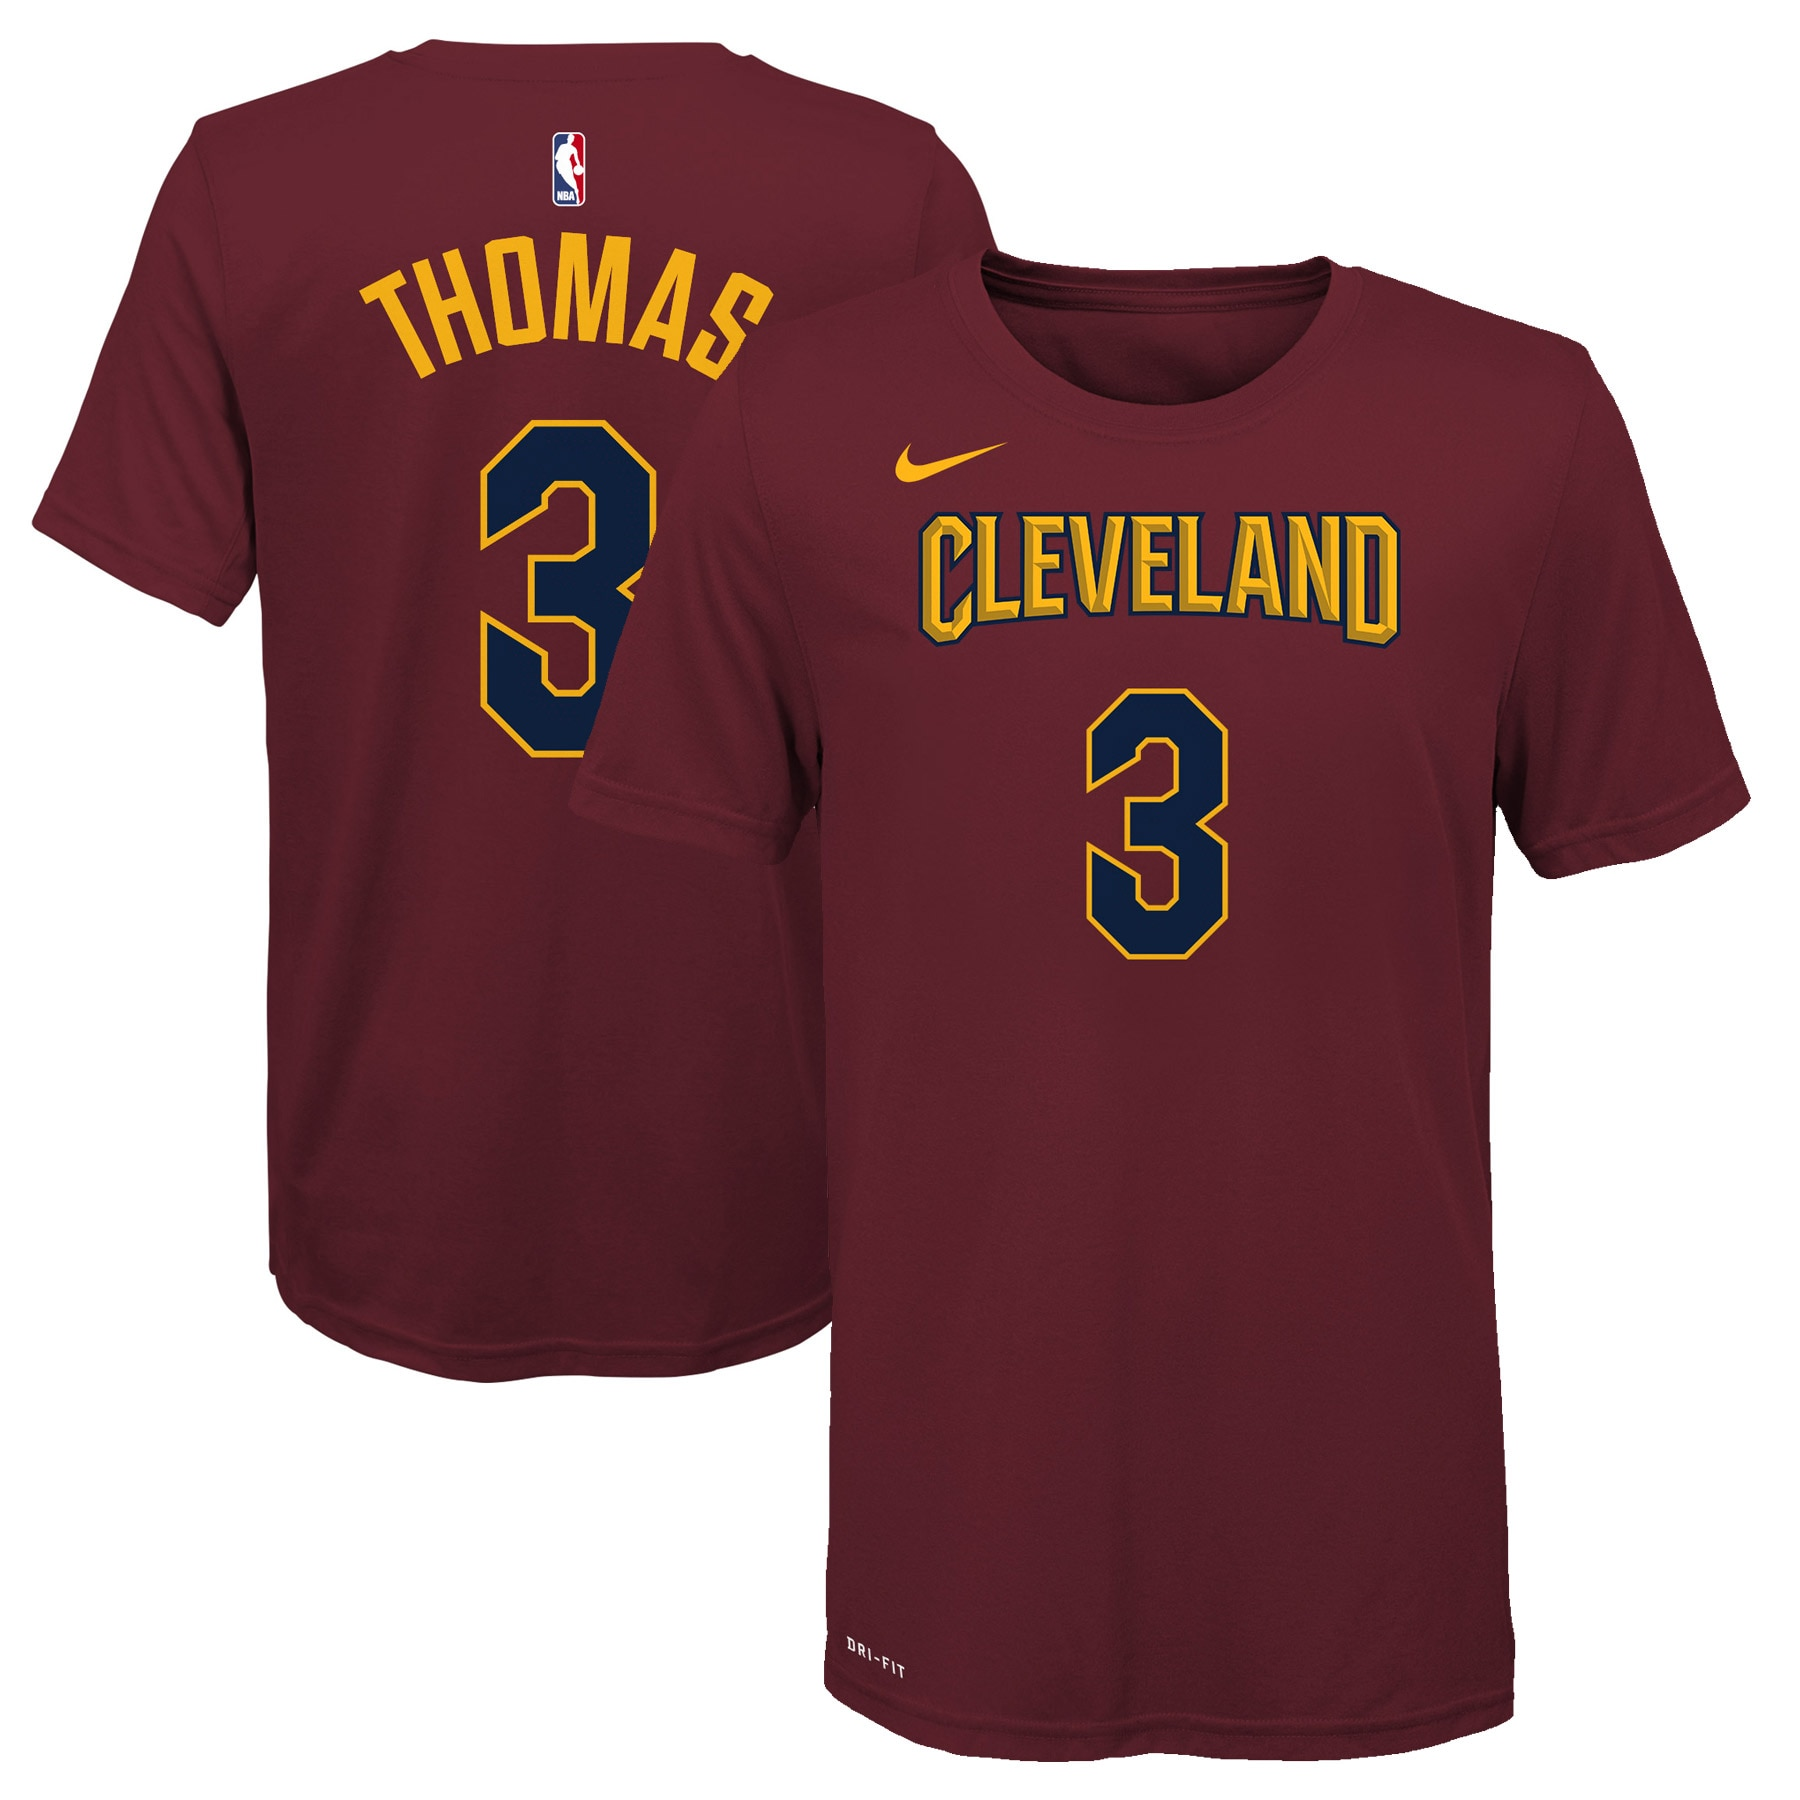 Isaiah Thomas Cleveland Cavaliers Nike Youth Name & Number T-Shirt - Maroon